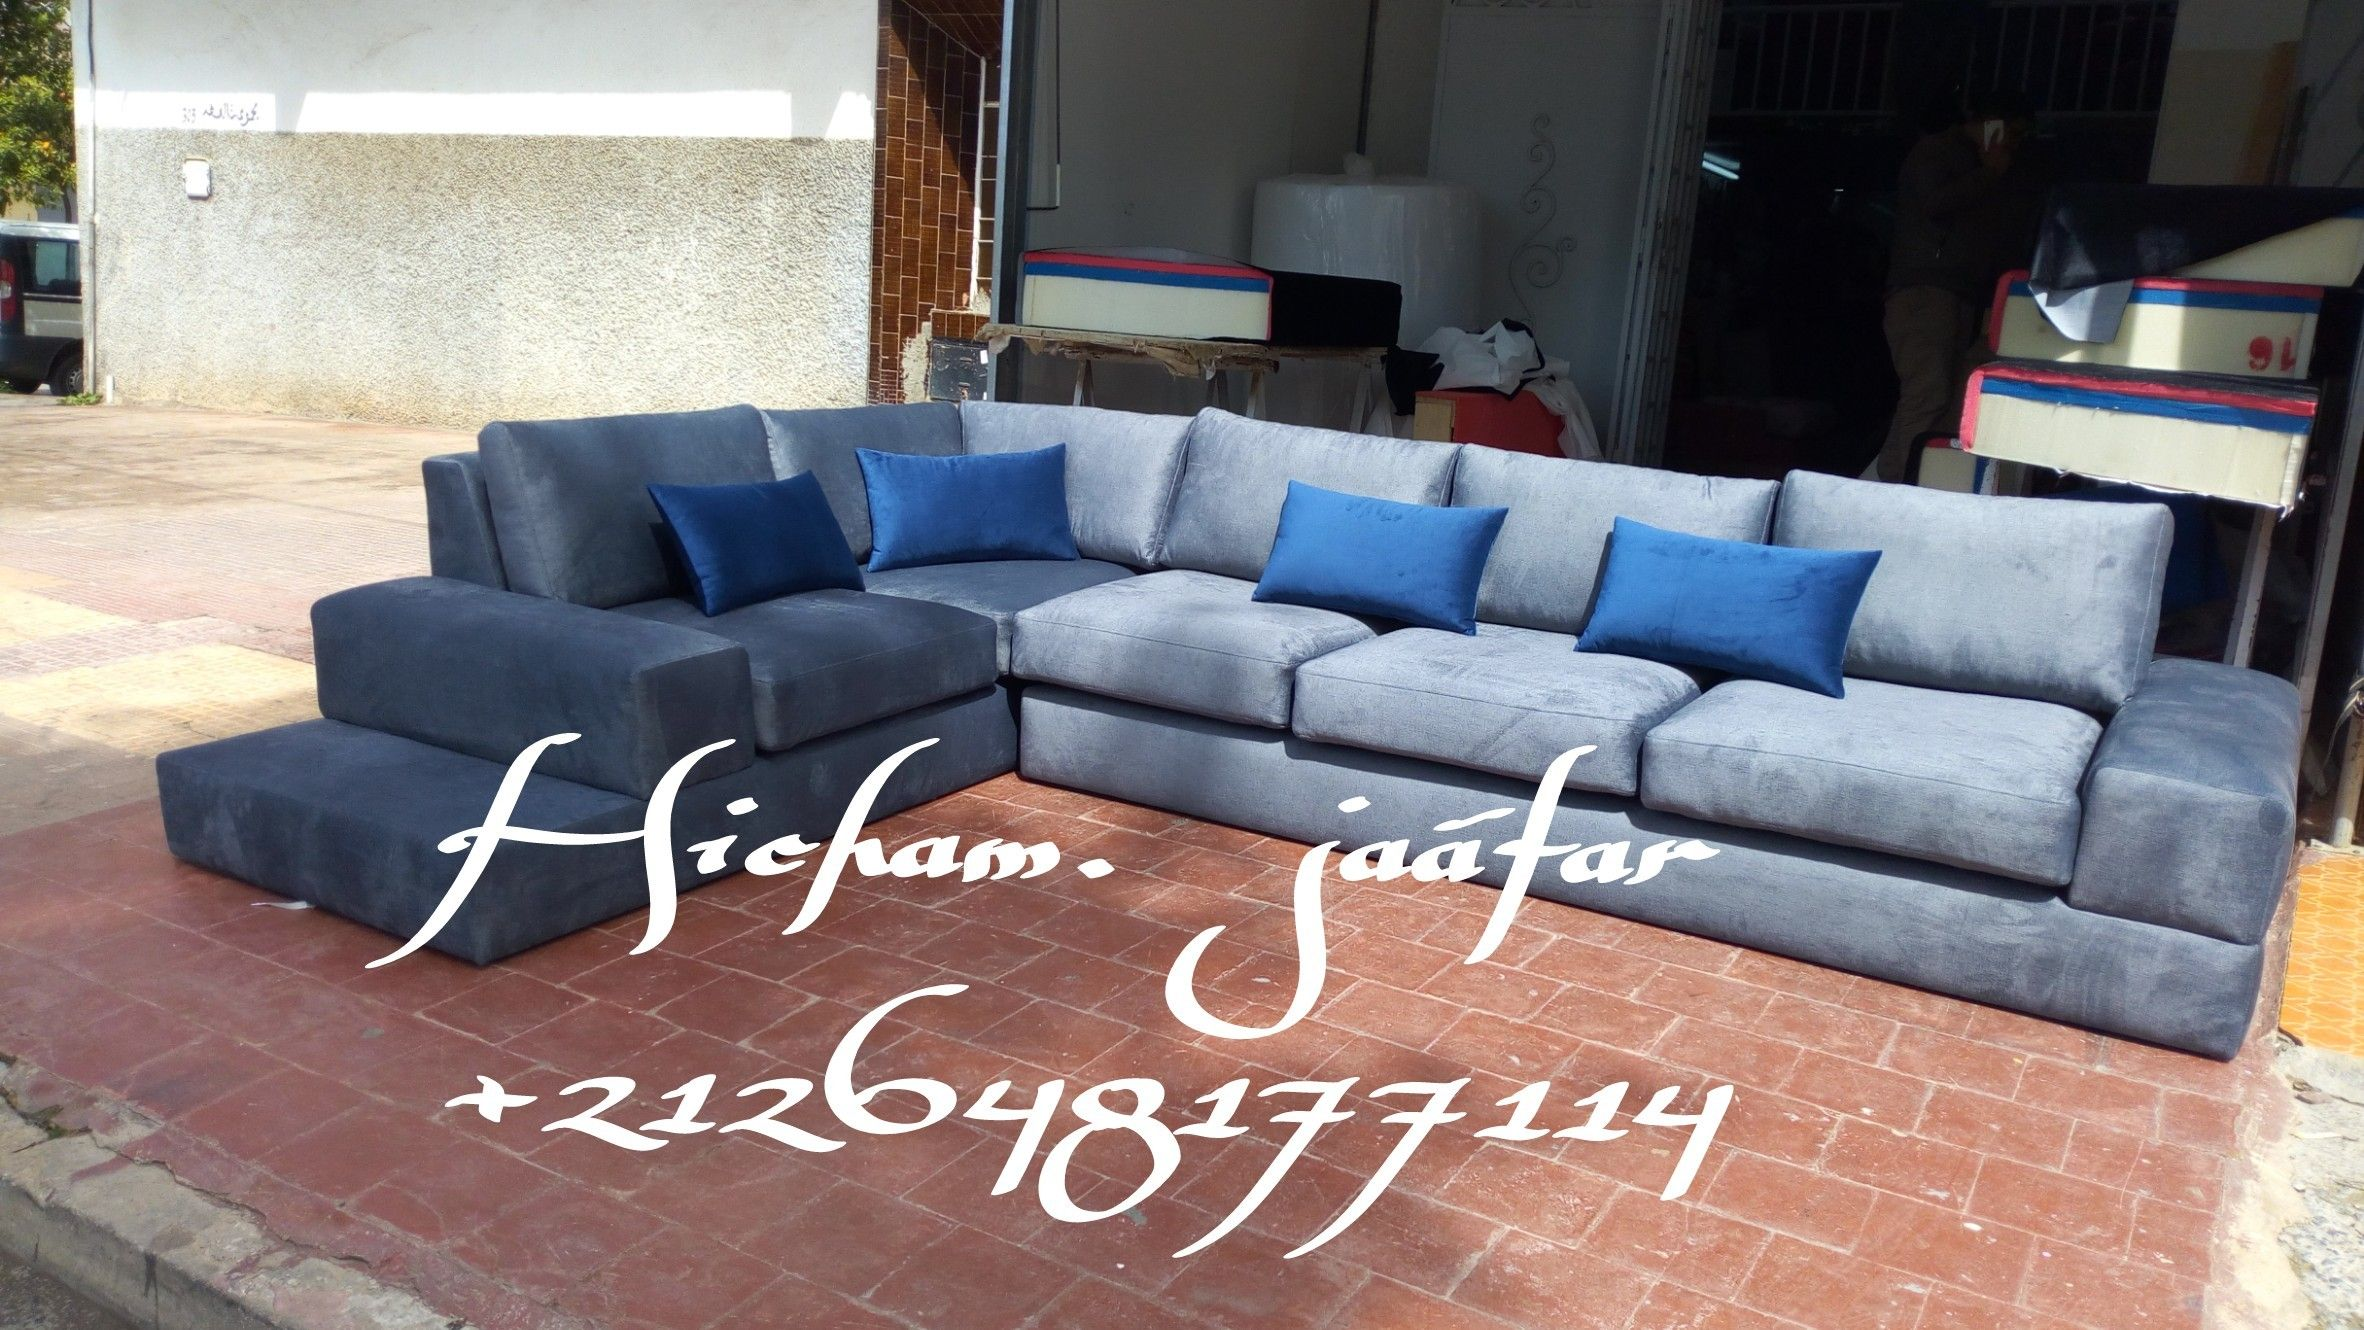 Facebook.com/hicham.tapiserier | decoration tapiserier | Decor, Home ...